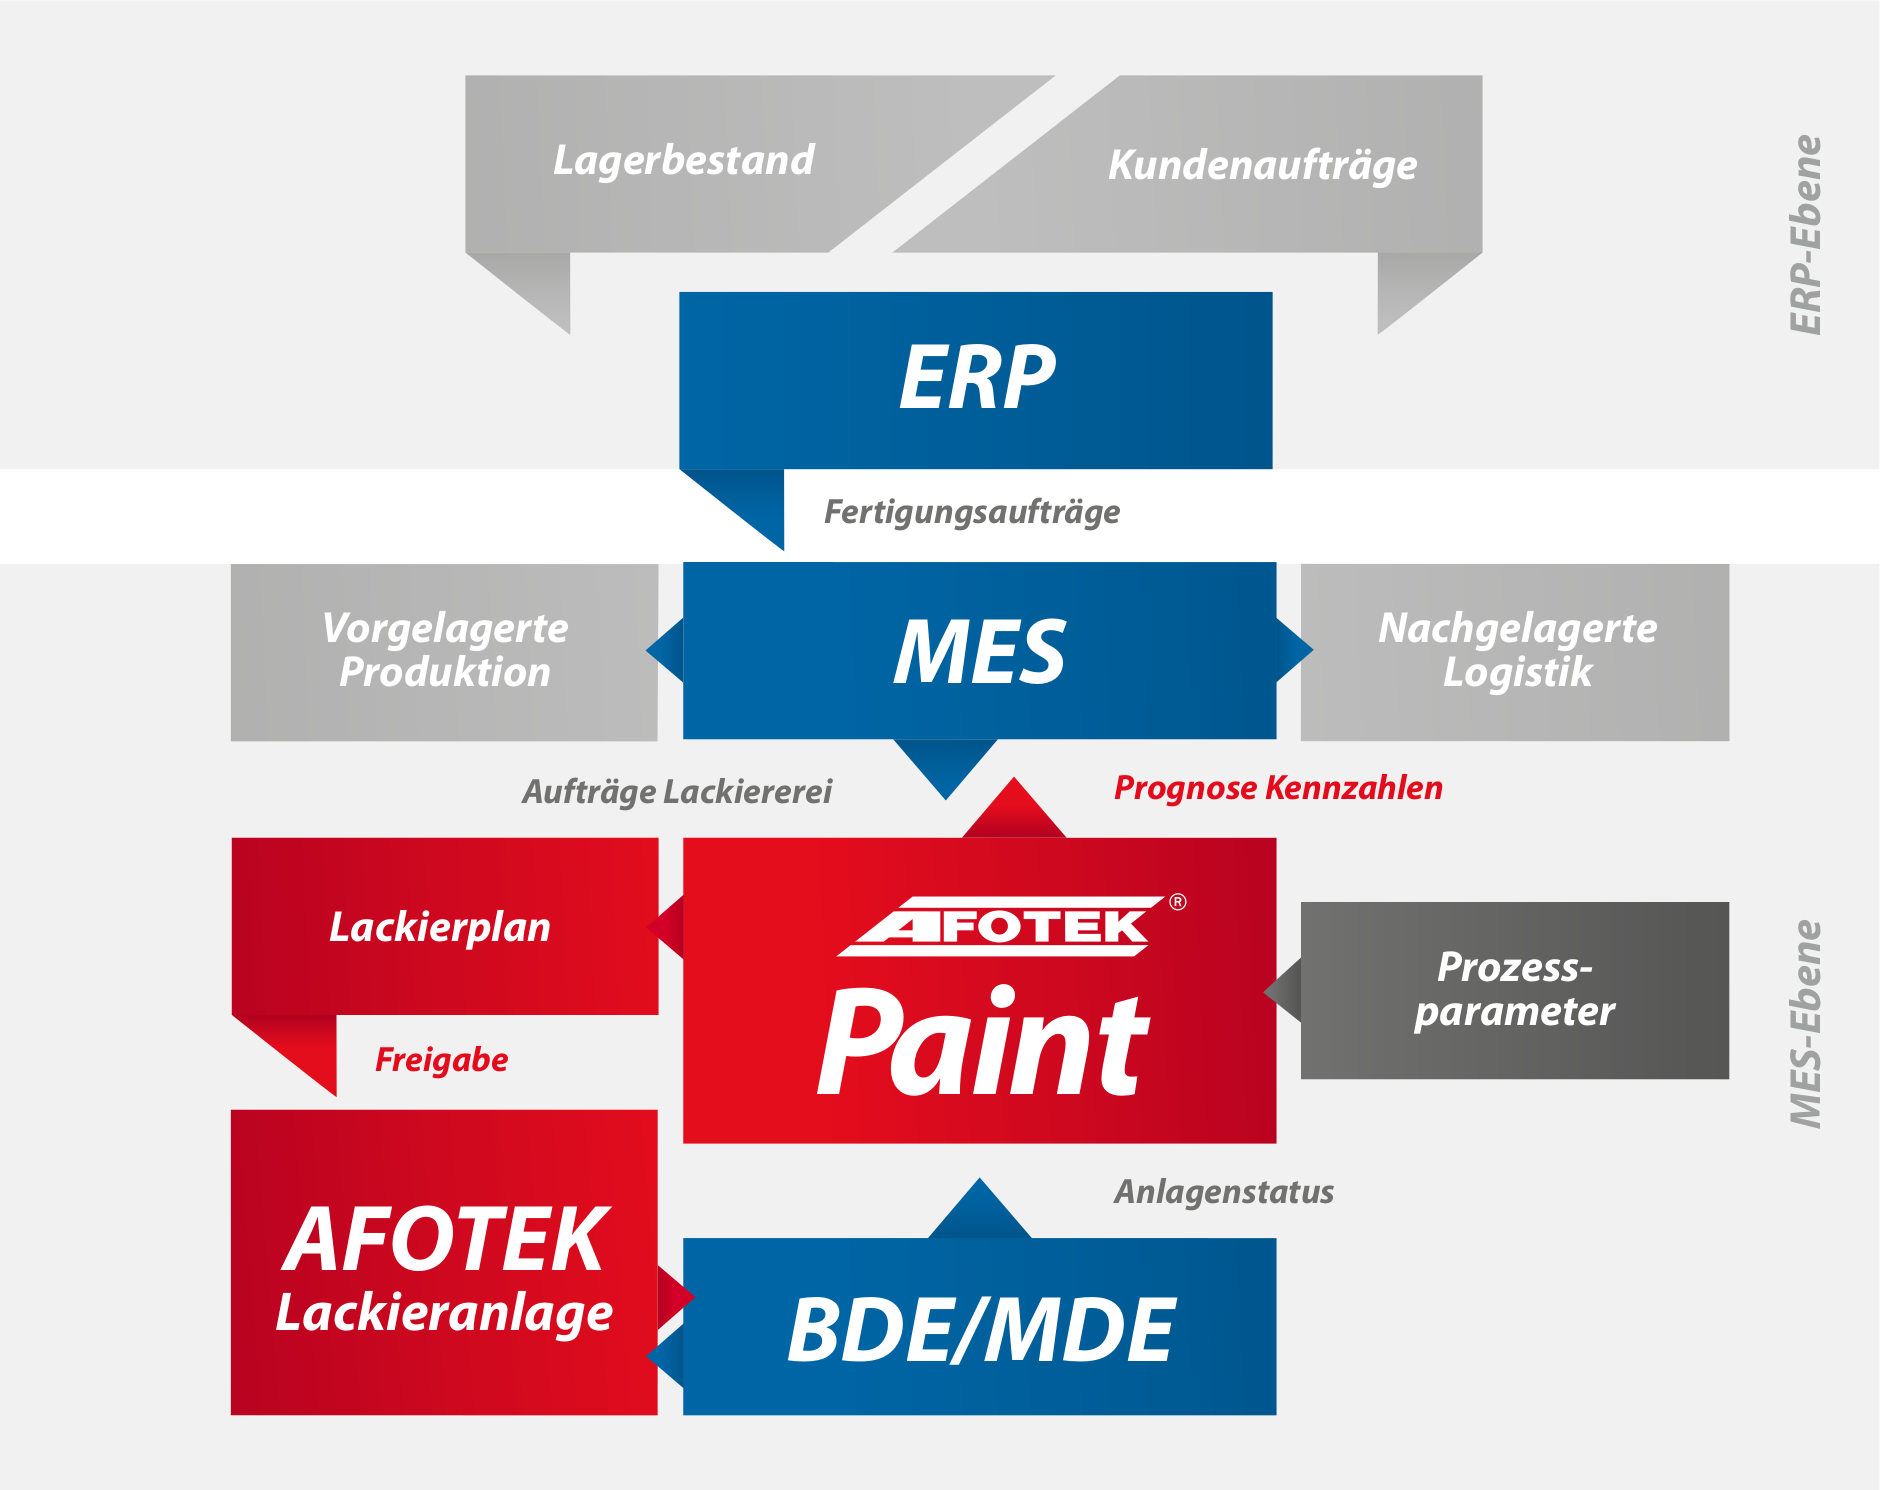 AFOTEK Paint im Produktionsprozess High Quali